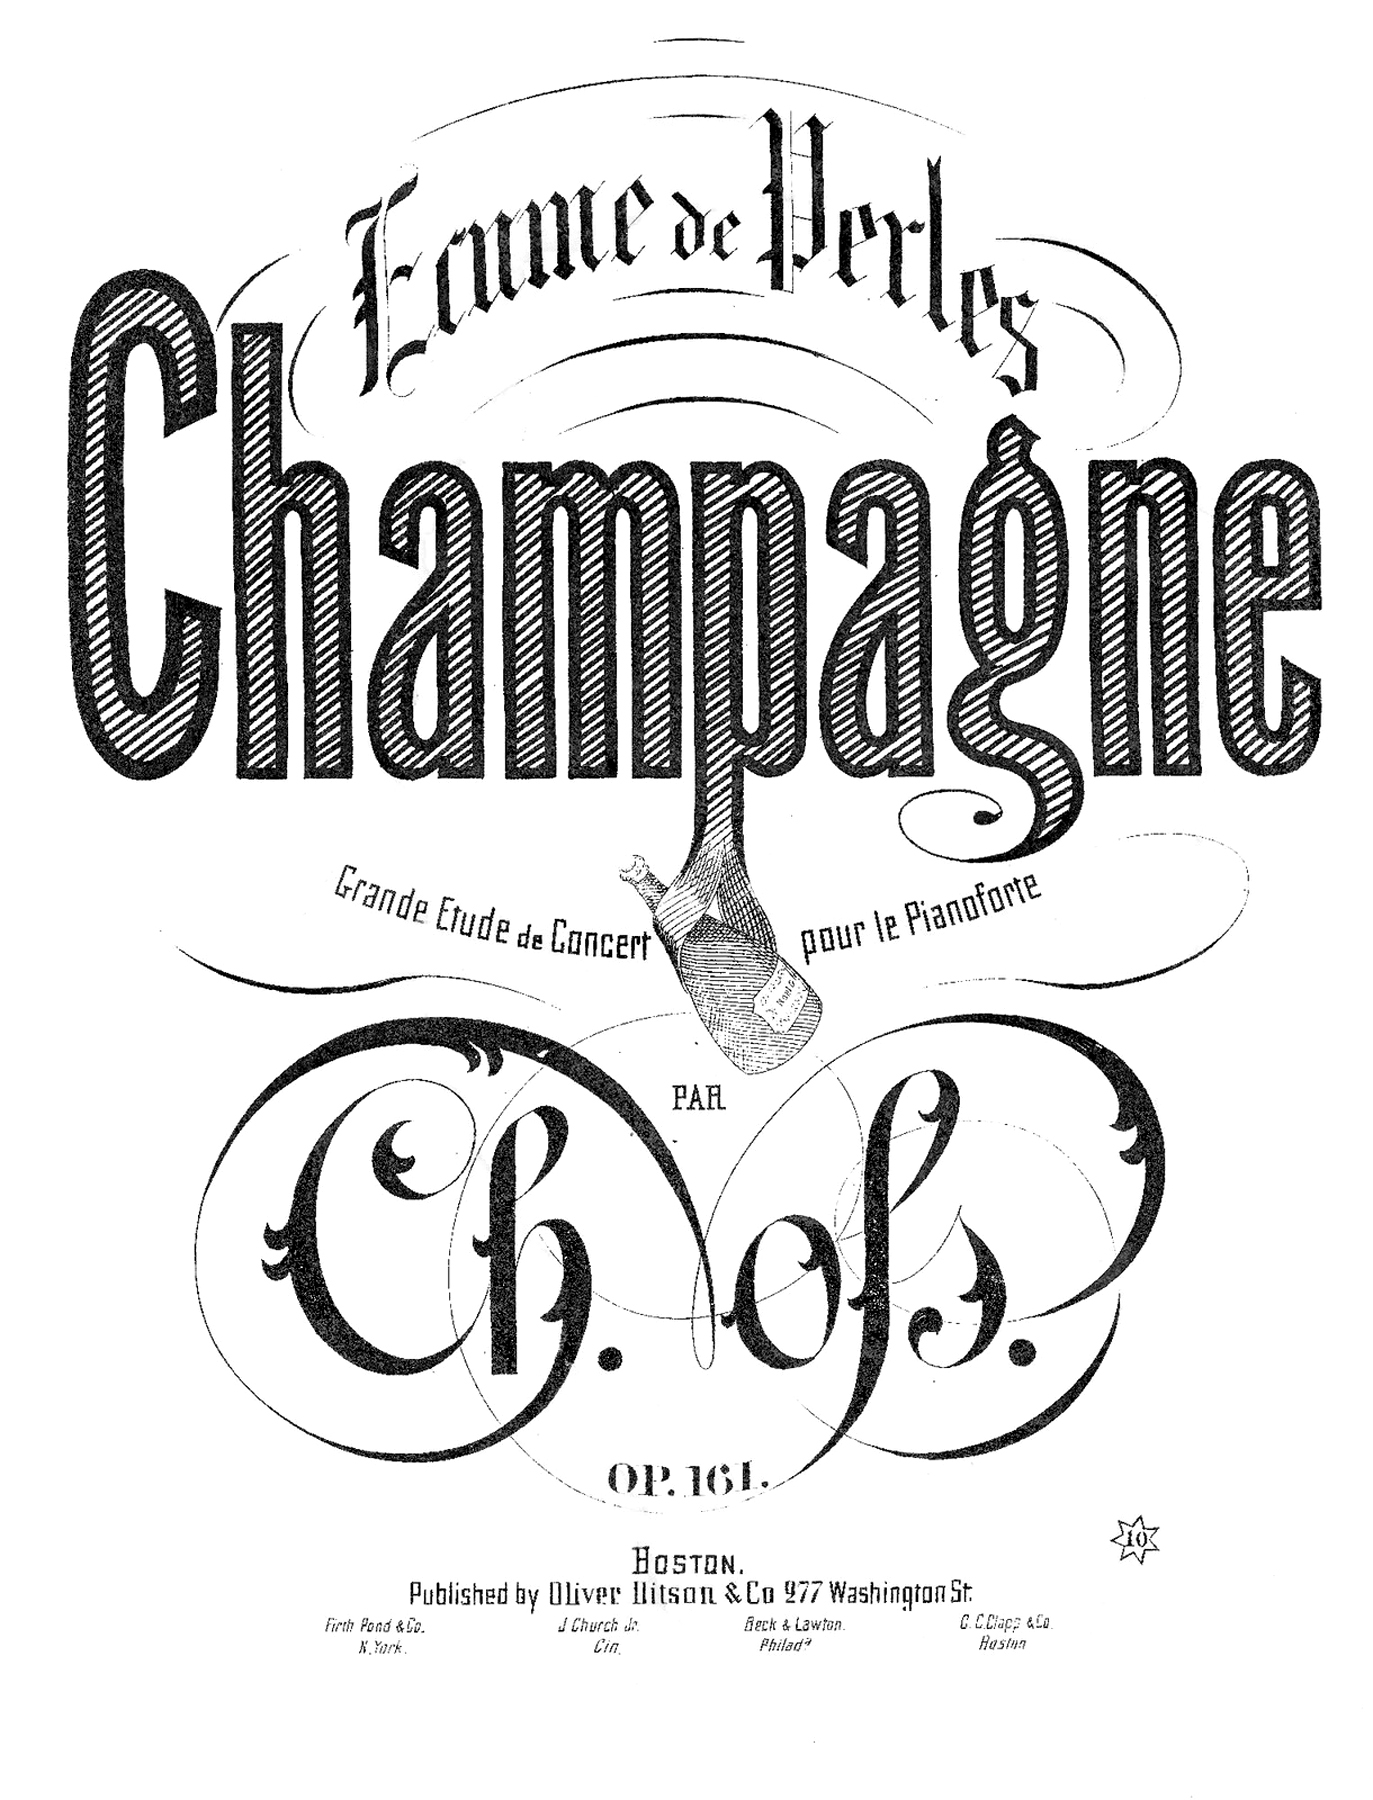 5 Champagne Clipart